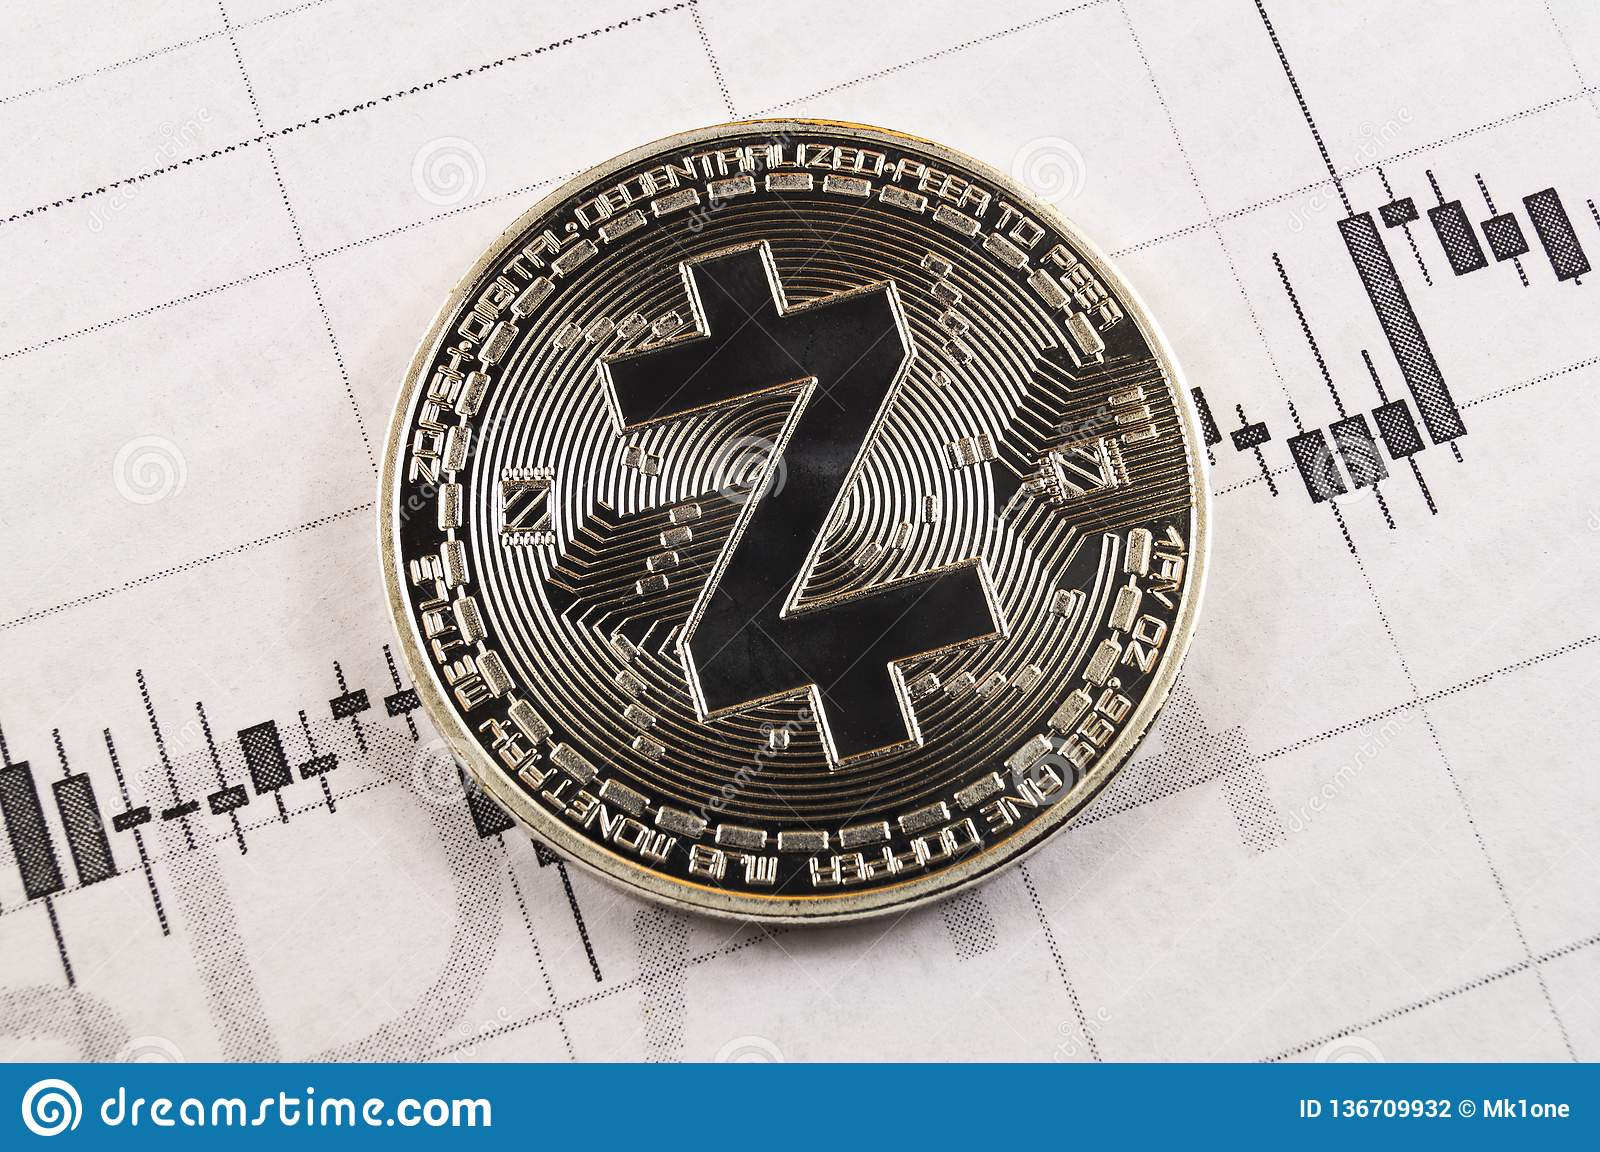 Zcash crypto currency book royal pirates betting everything audio visual san francisco